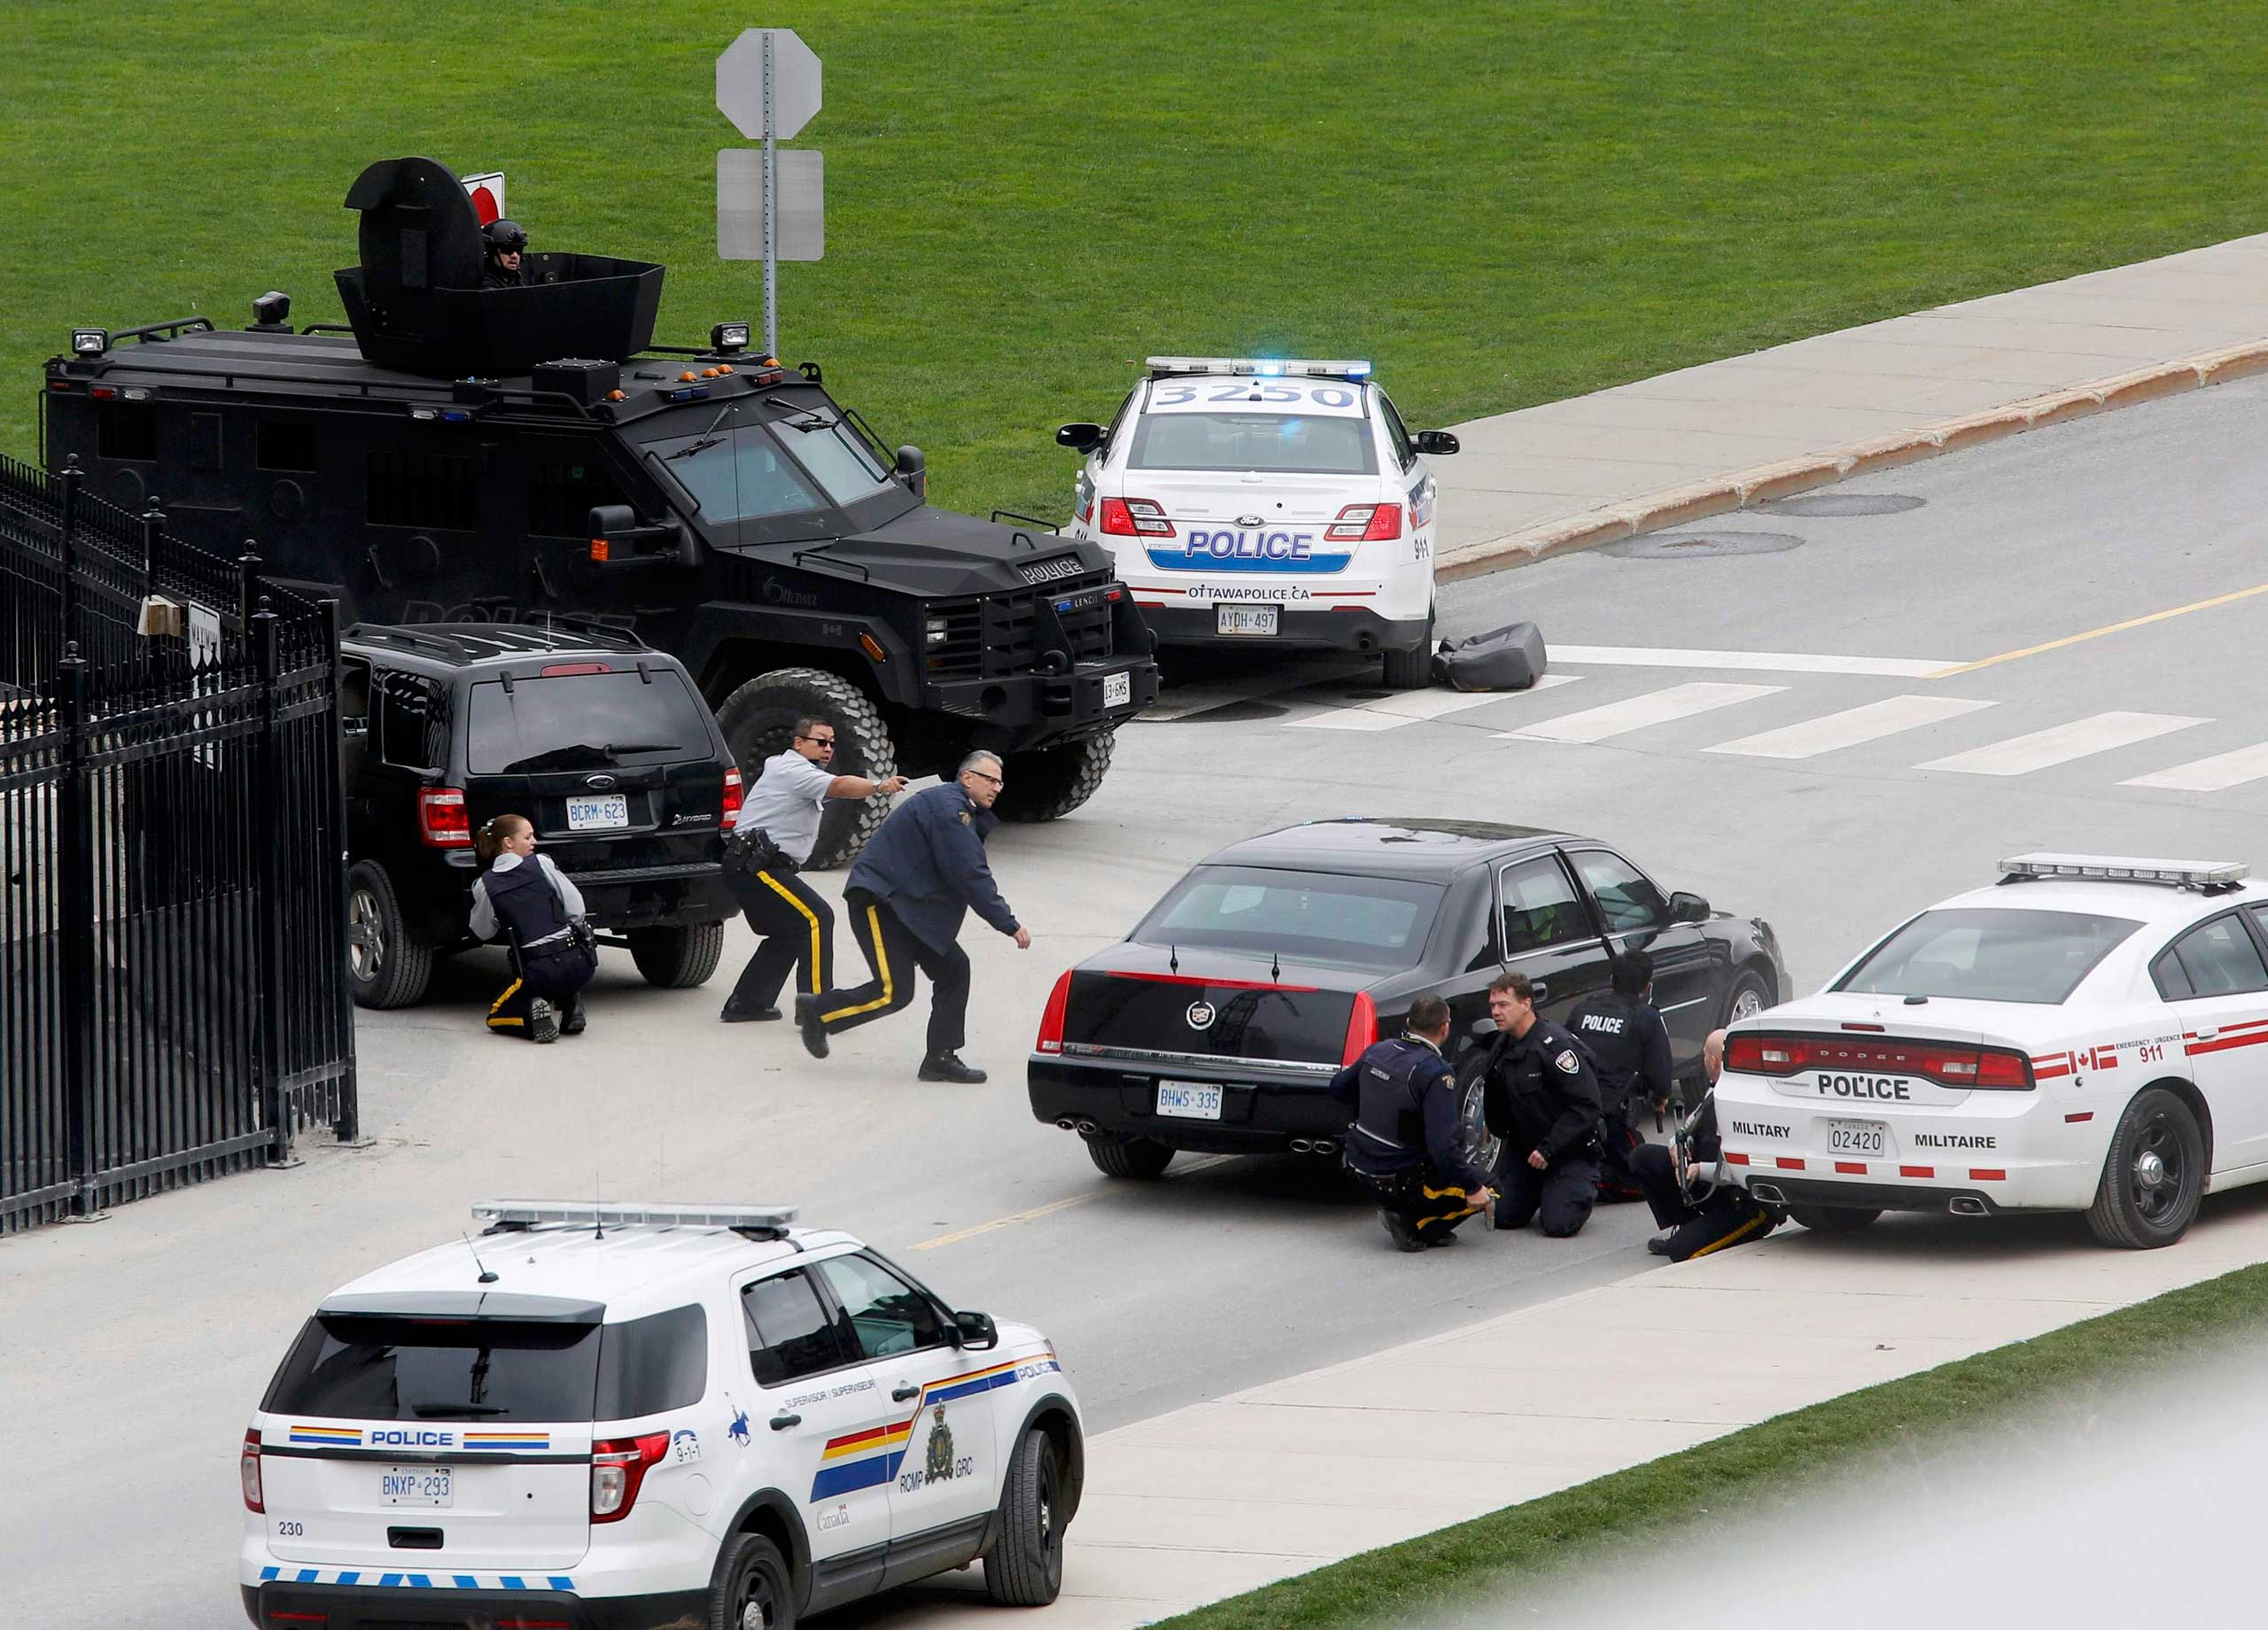 Oct. 22, 2014. Police officers take cover near Parliament Hill following a shooting incident in Ottawa. A Canadian soldier was shot at the Canadian War Memorial and a shooter was seen running towards the nearby parliament buildings, where more shots were fired, according to media and eyewitness reports.